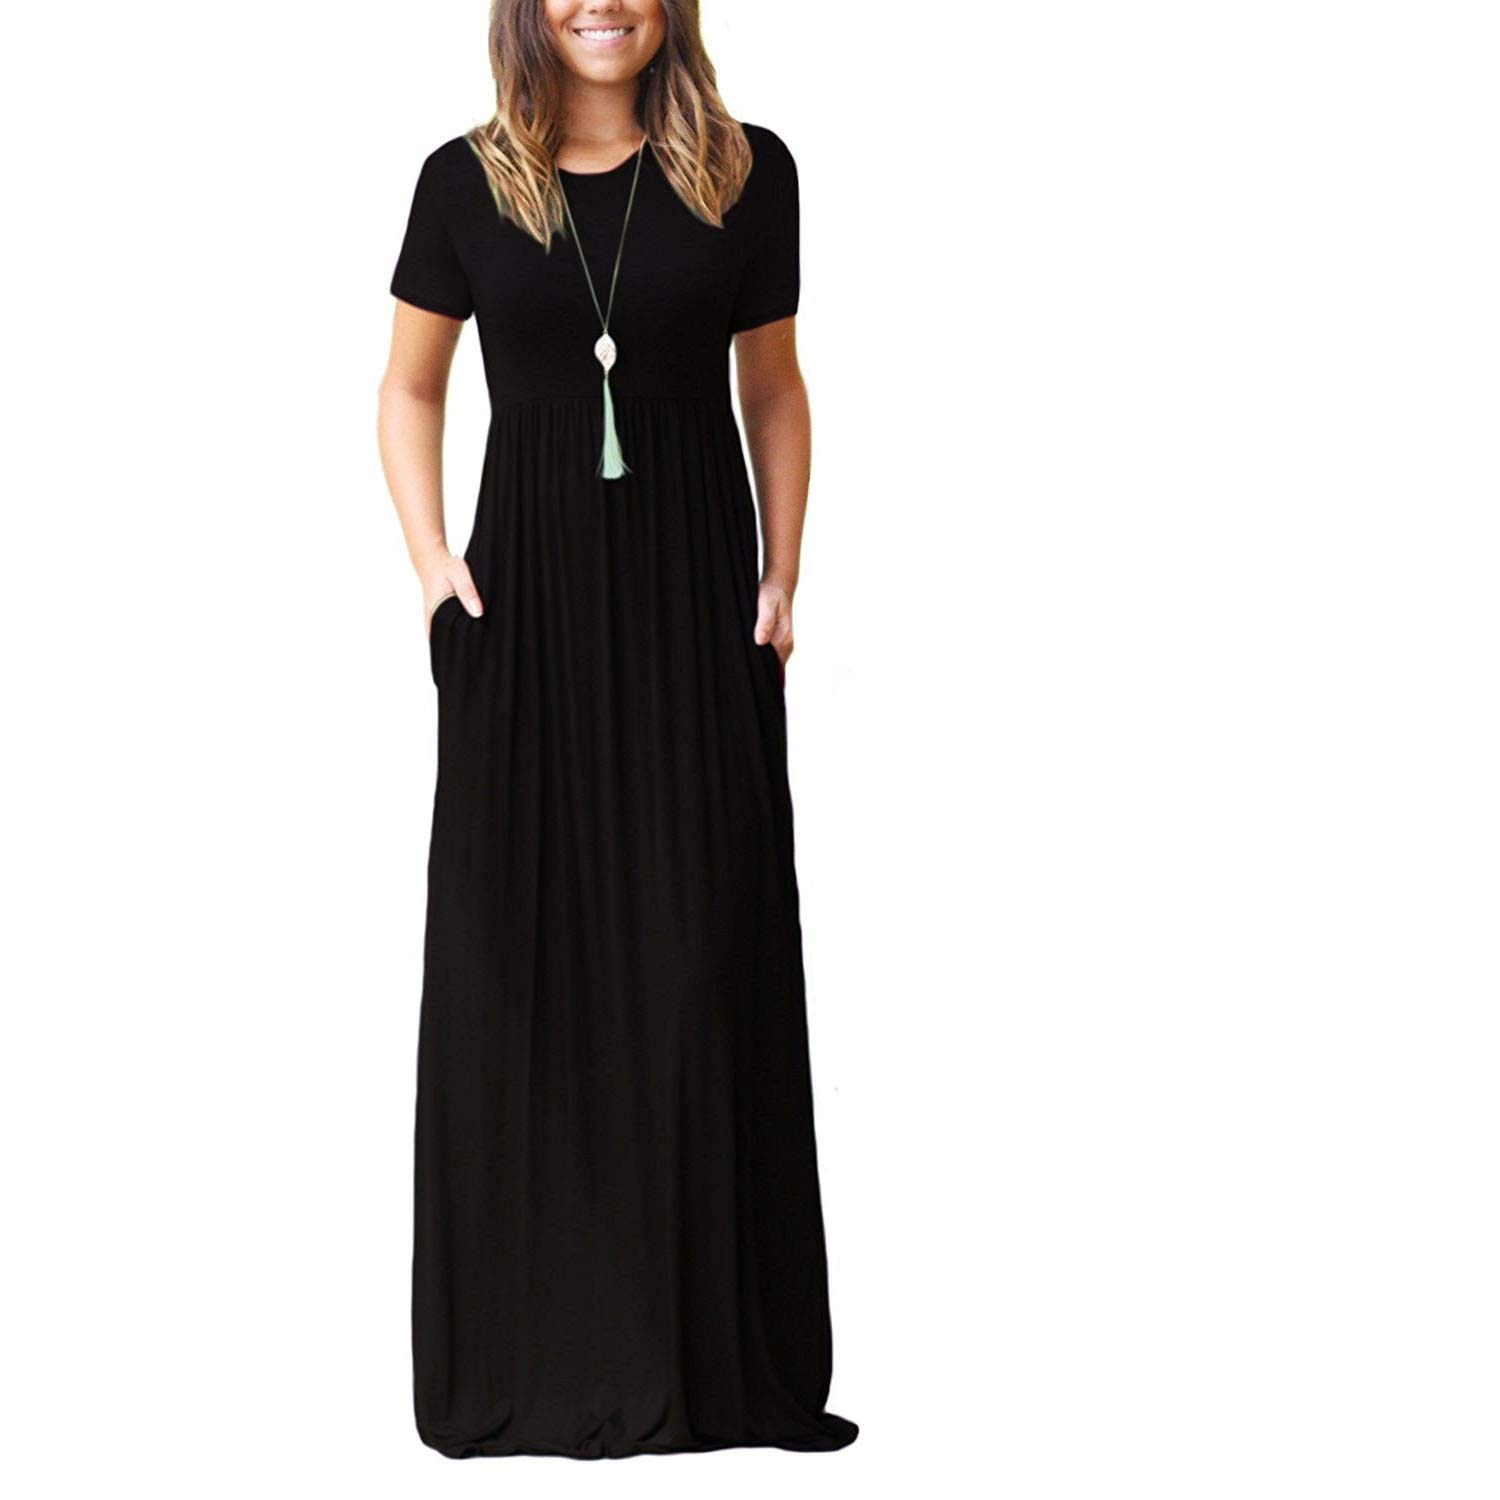 e829826bb875 MAKARTHY Womens Maxi Dress Short Sleeve Cotton Long Dress with Pockets at  Amazon Women's Clothing store: